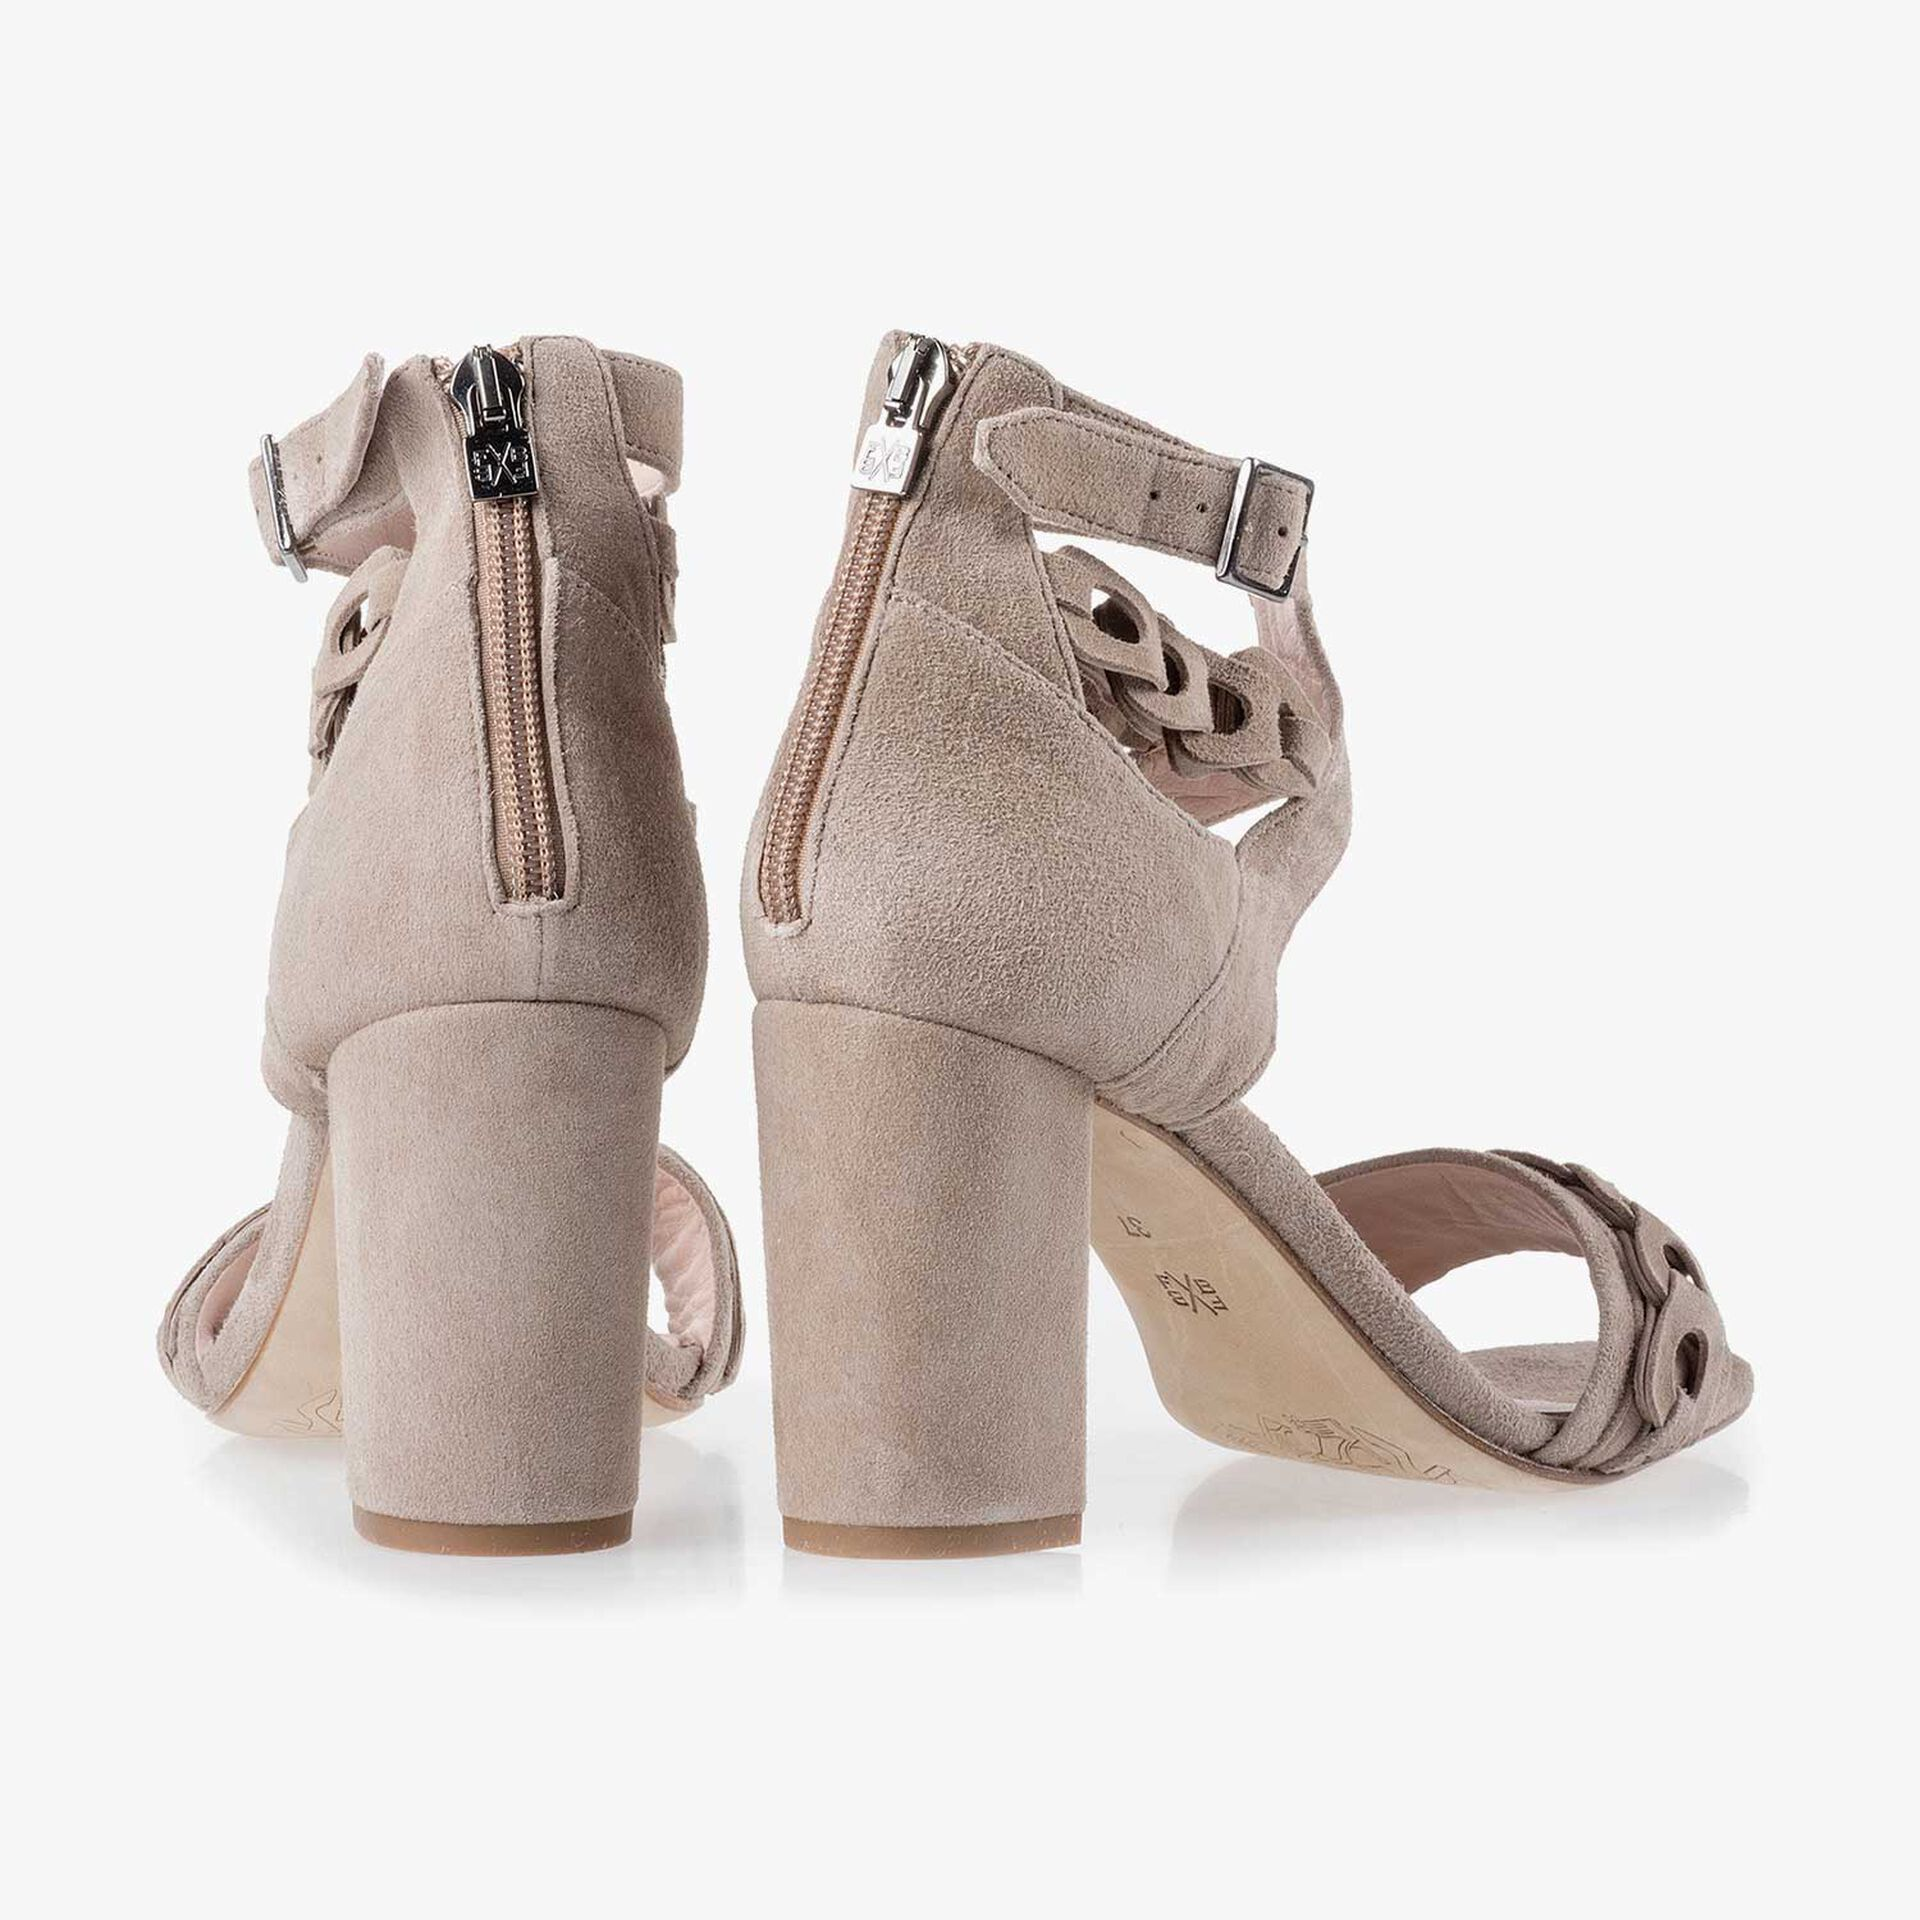 Taupe-coloured calf's suede leather sandal